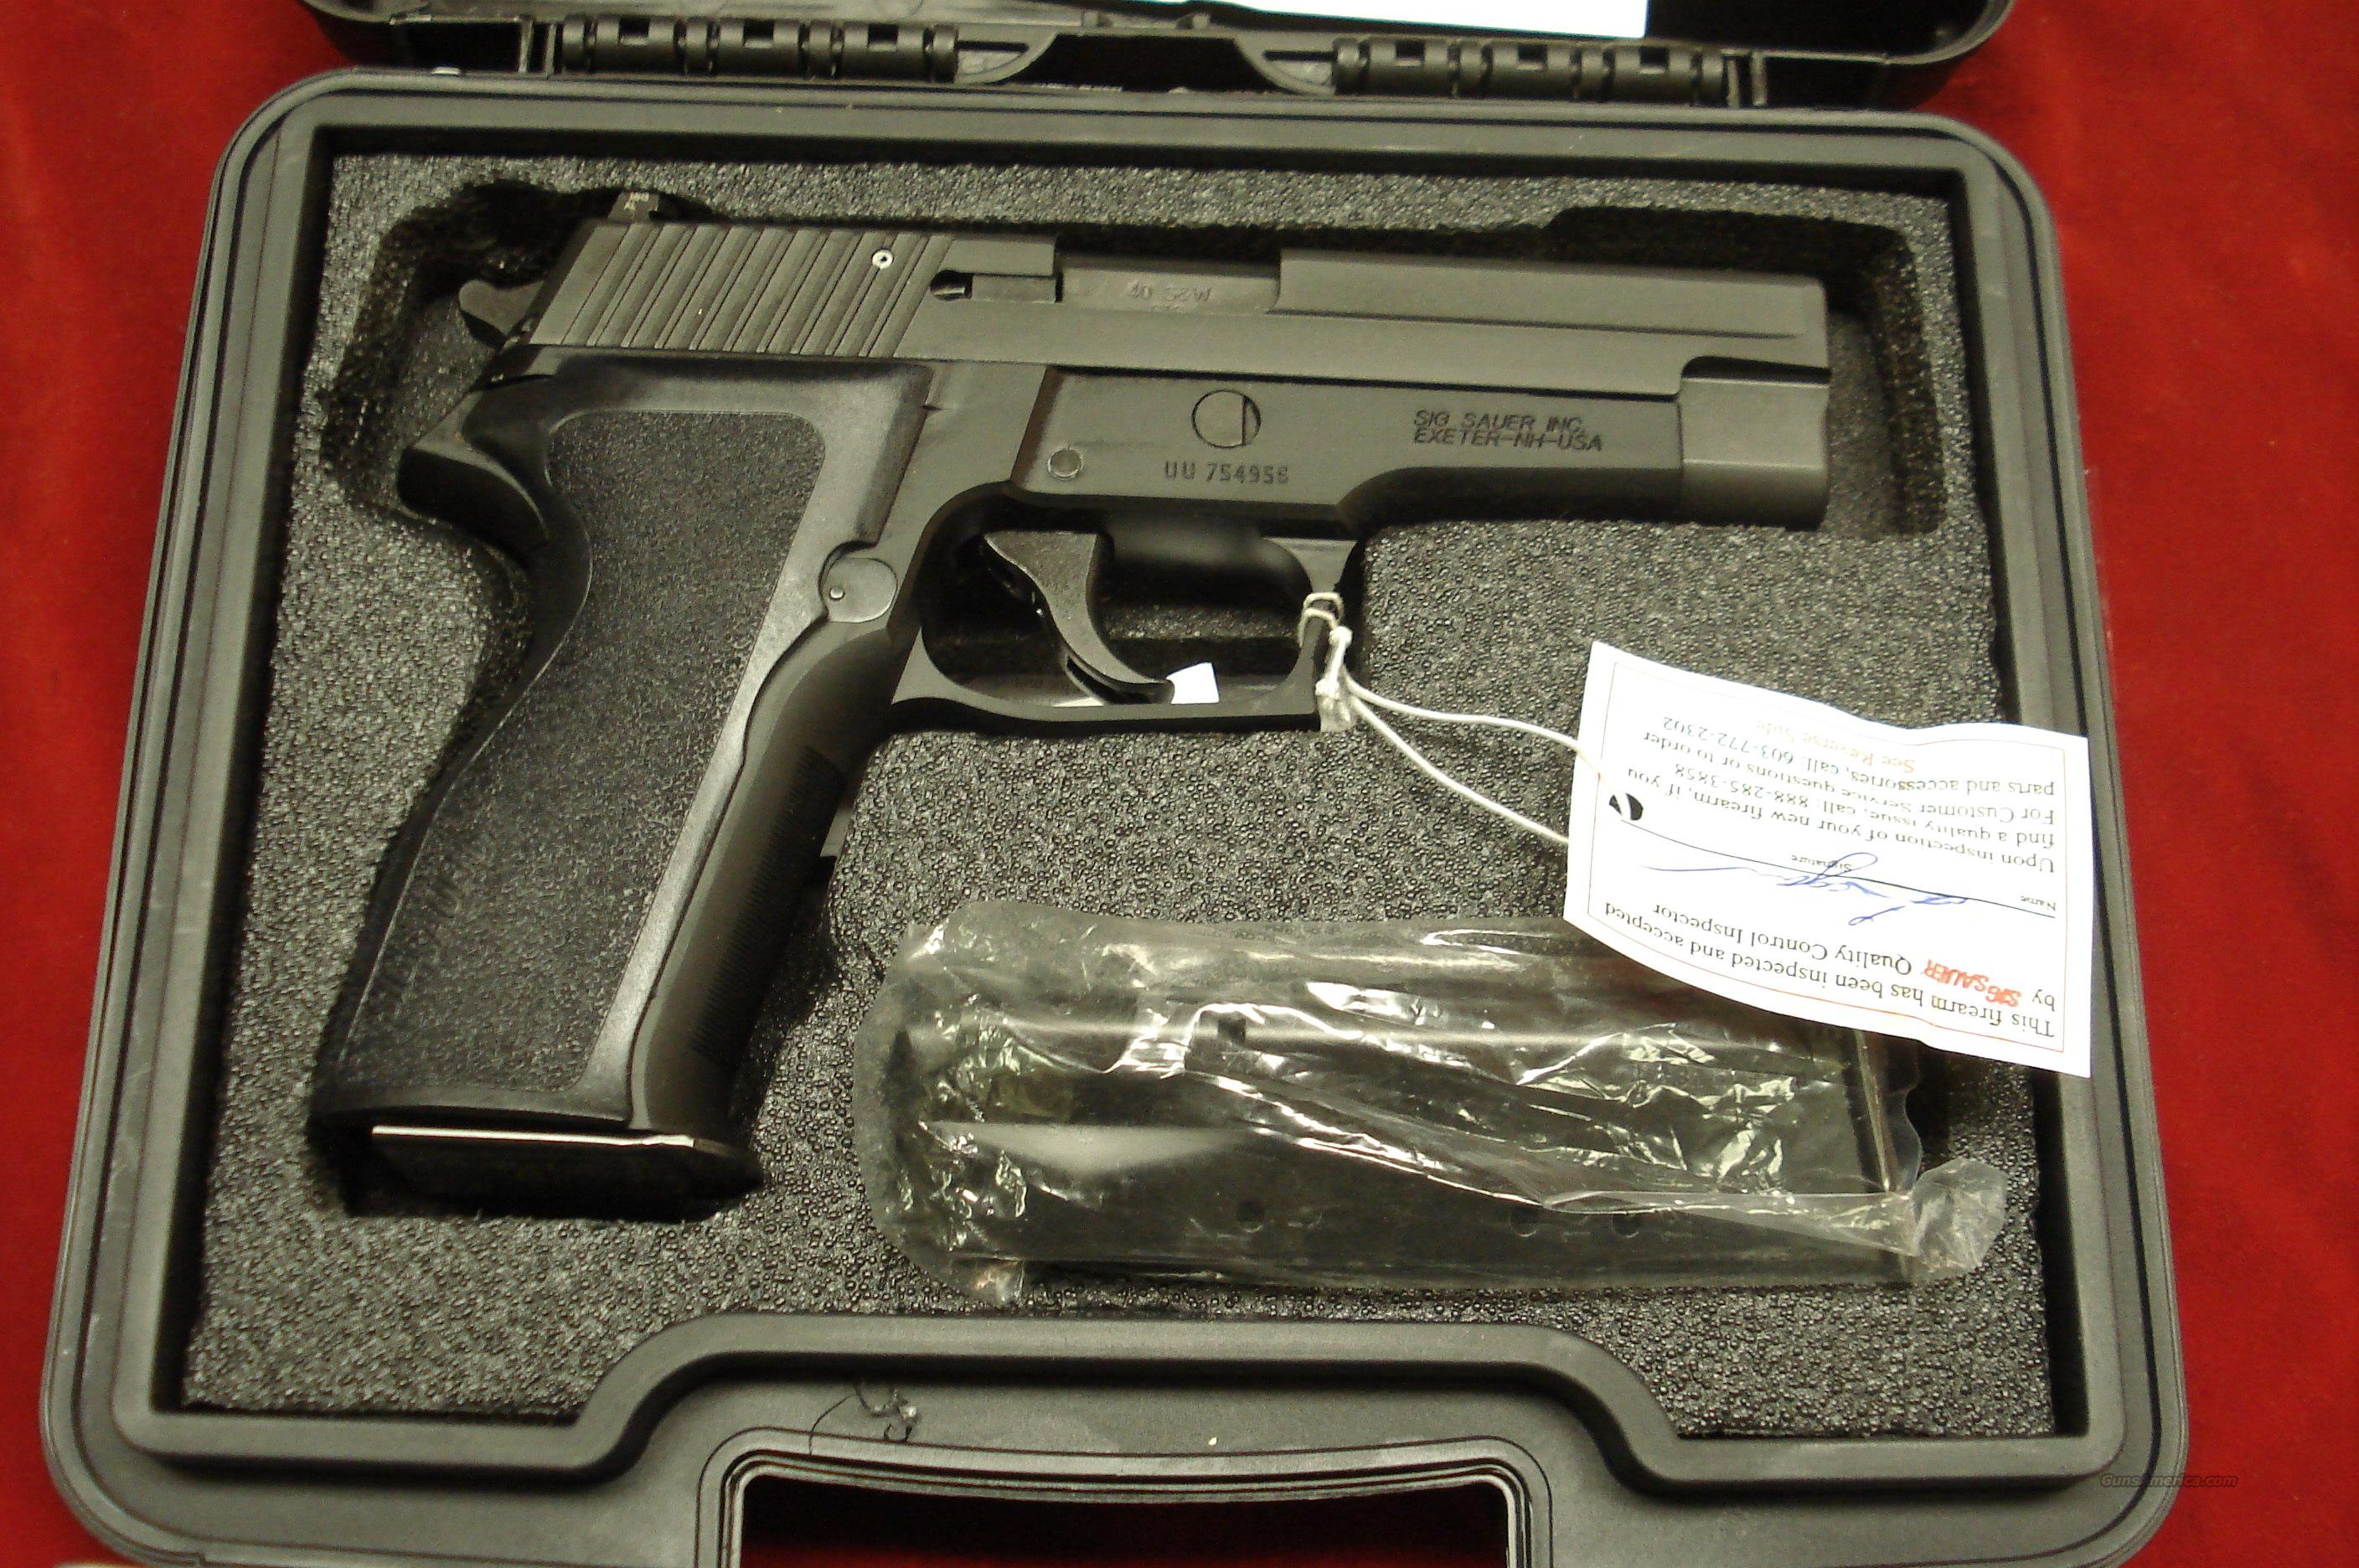 SIG SAUER P226 40CAL. WITH NIGHT SIGHTS NEW  Guns > Pistols > Sig - Sauer/Sigarms Pistols > P226